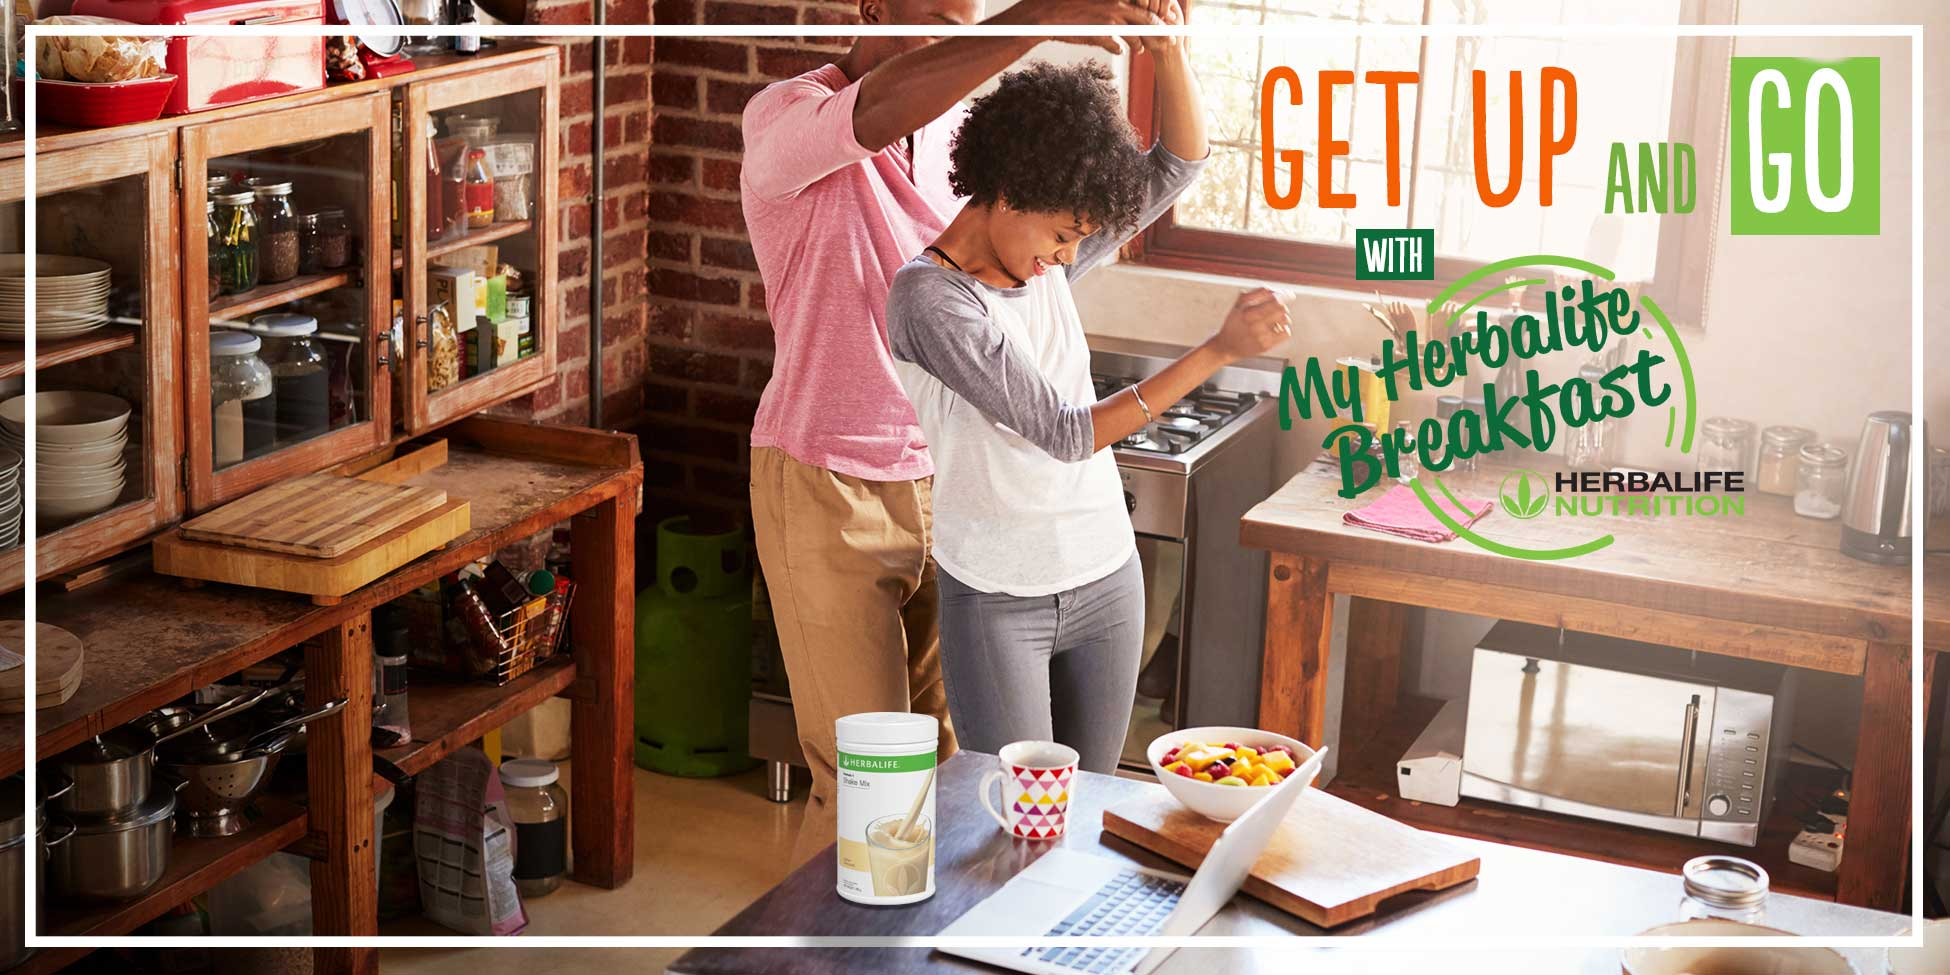 herbalife website banner 2w